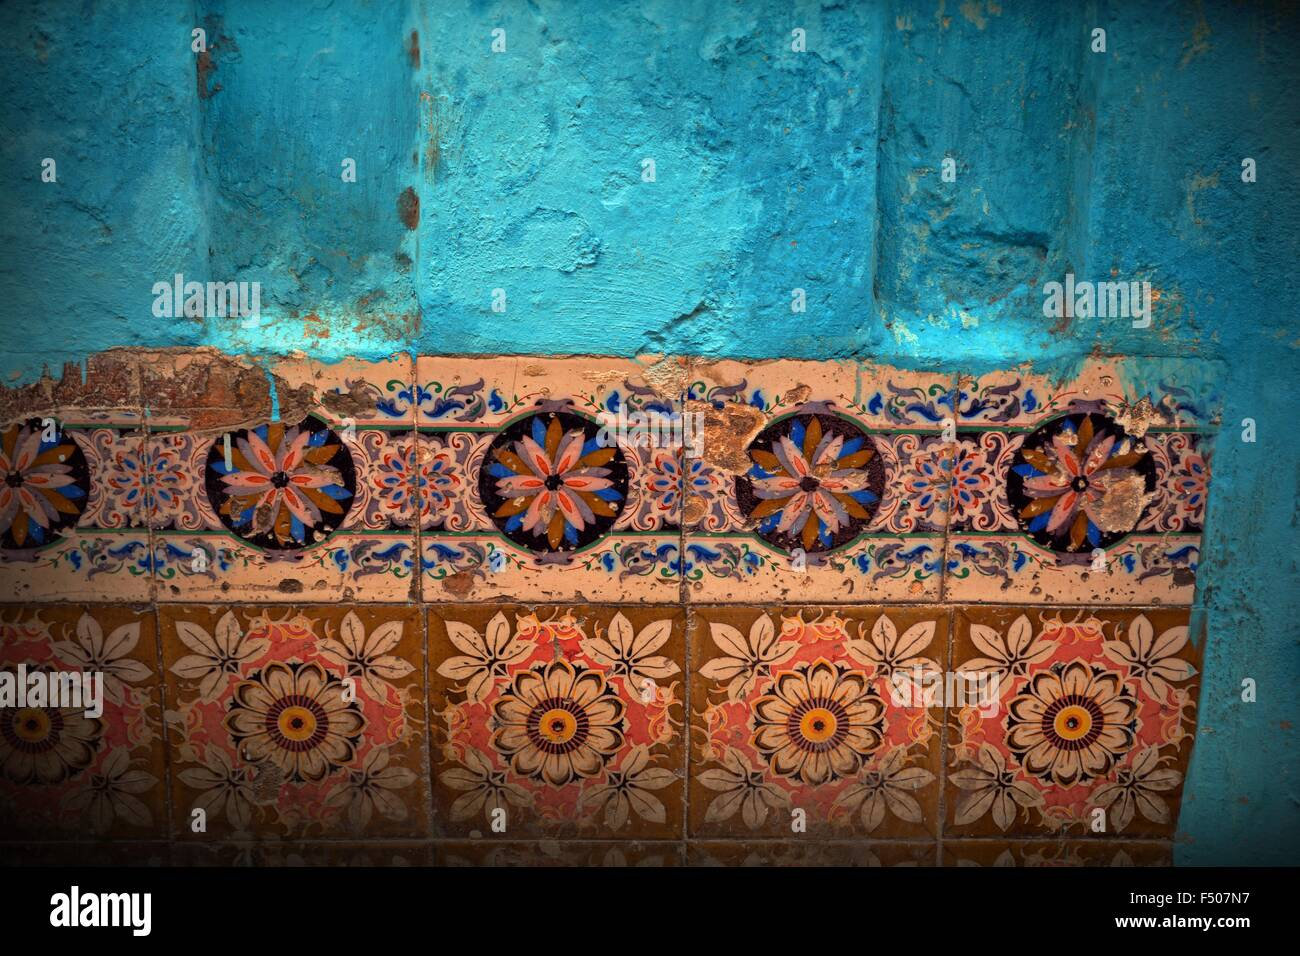 detail of colorful decorative tiles set in a bright blue wall of a Havana home in Cuba - Stock Image